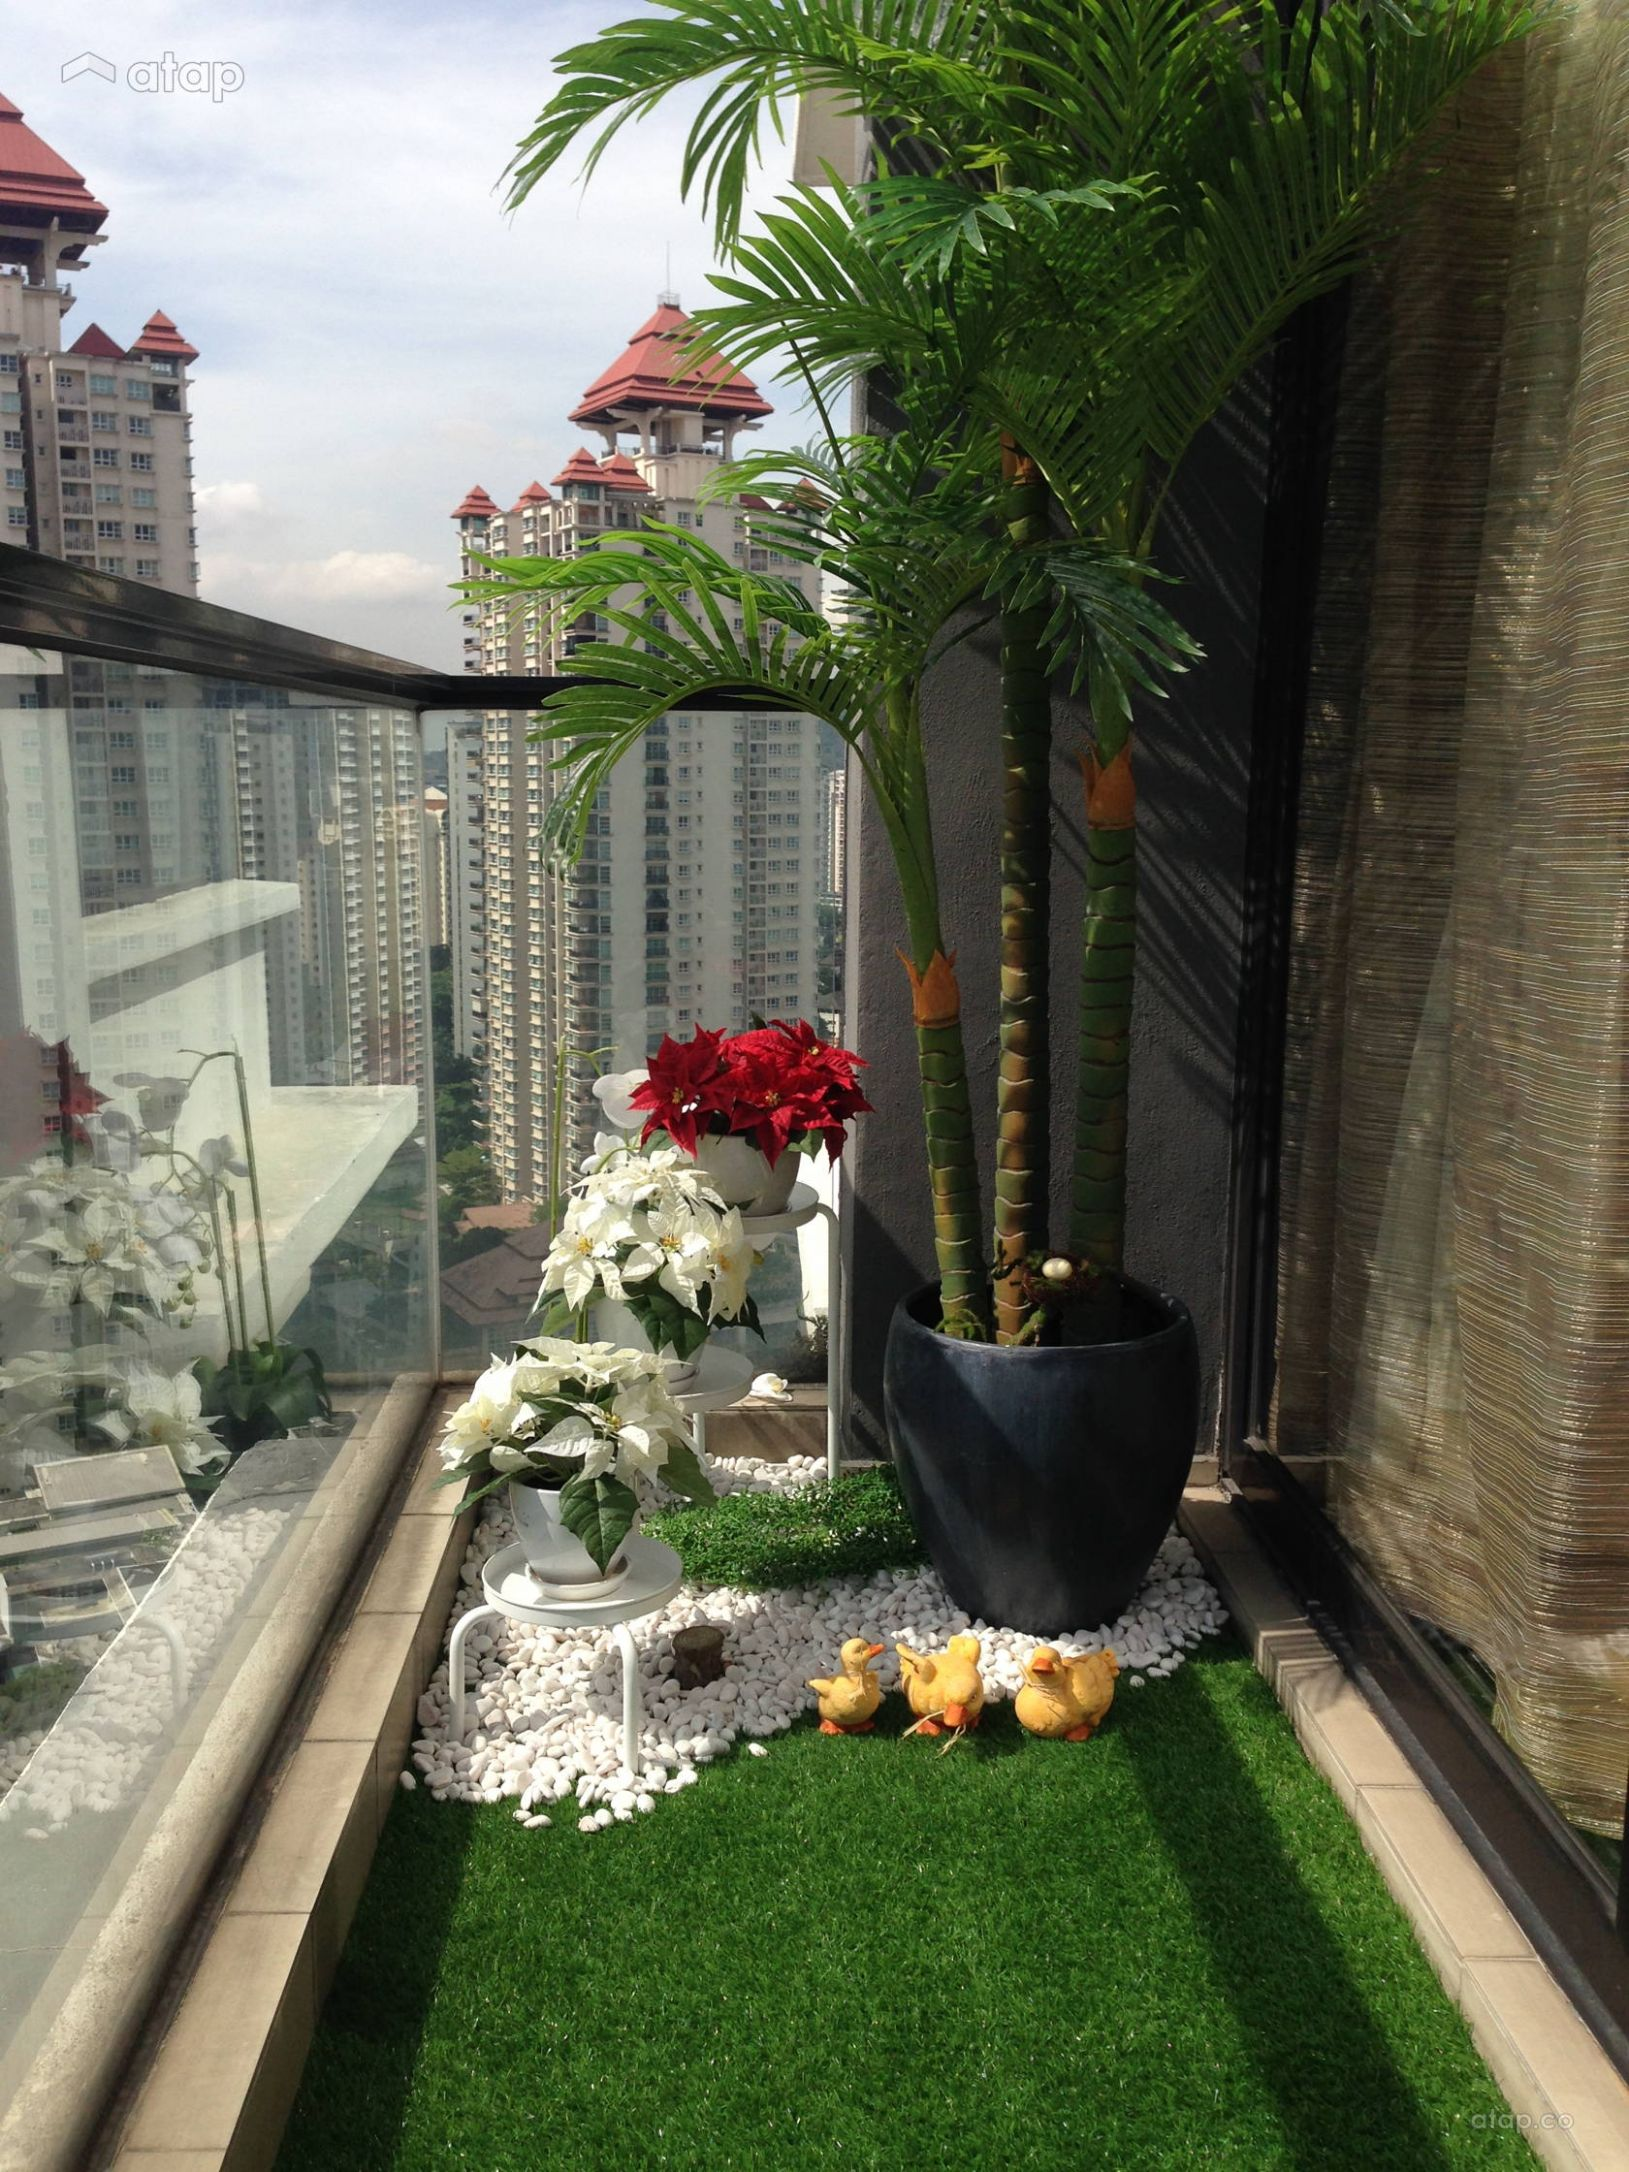 Balcony Ideas You Can Steal from These Malaysian Homes | Atap.co